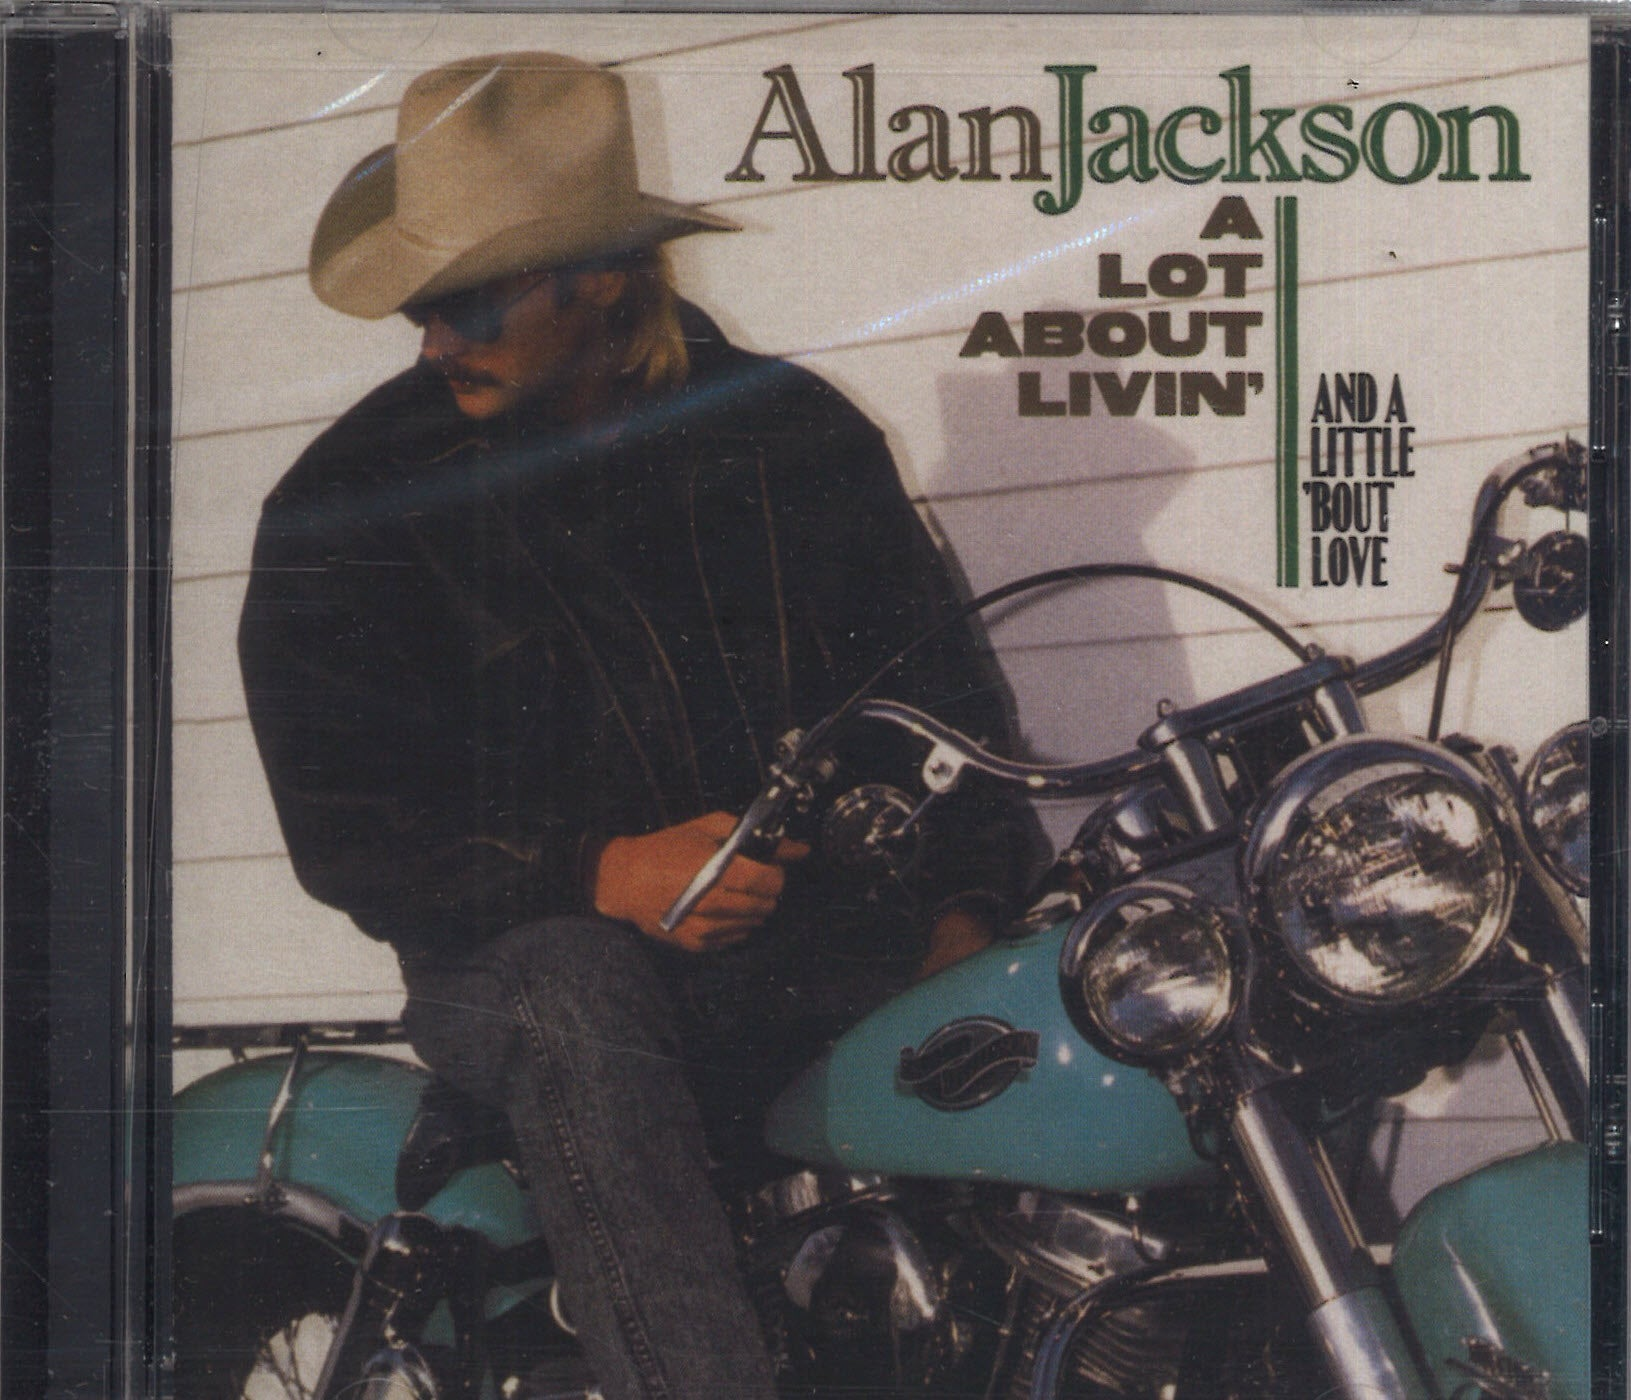 Alan Jackson A Lot About Livin' And A Little 'Bout Love